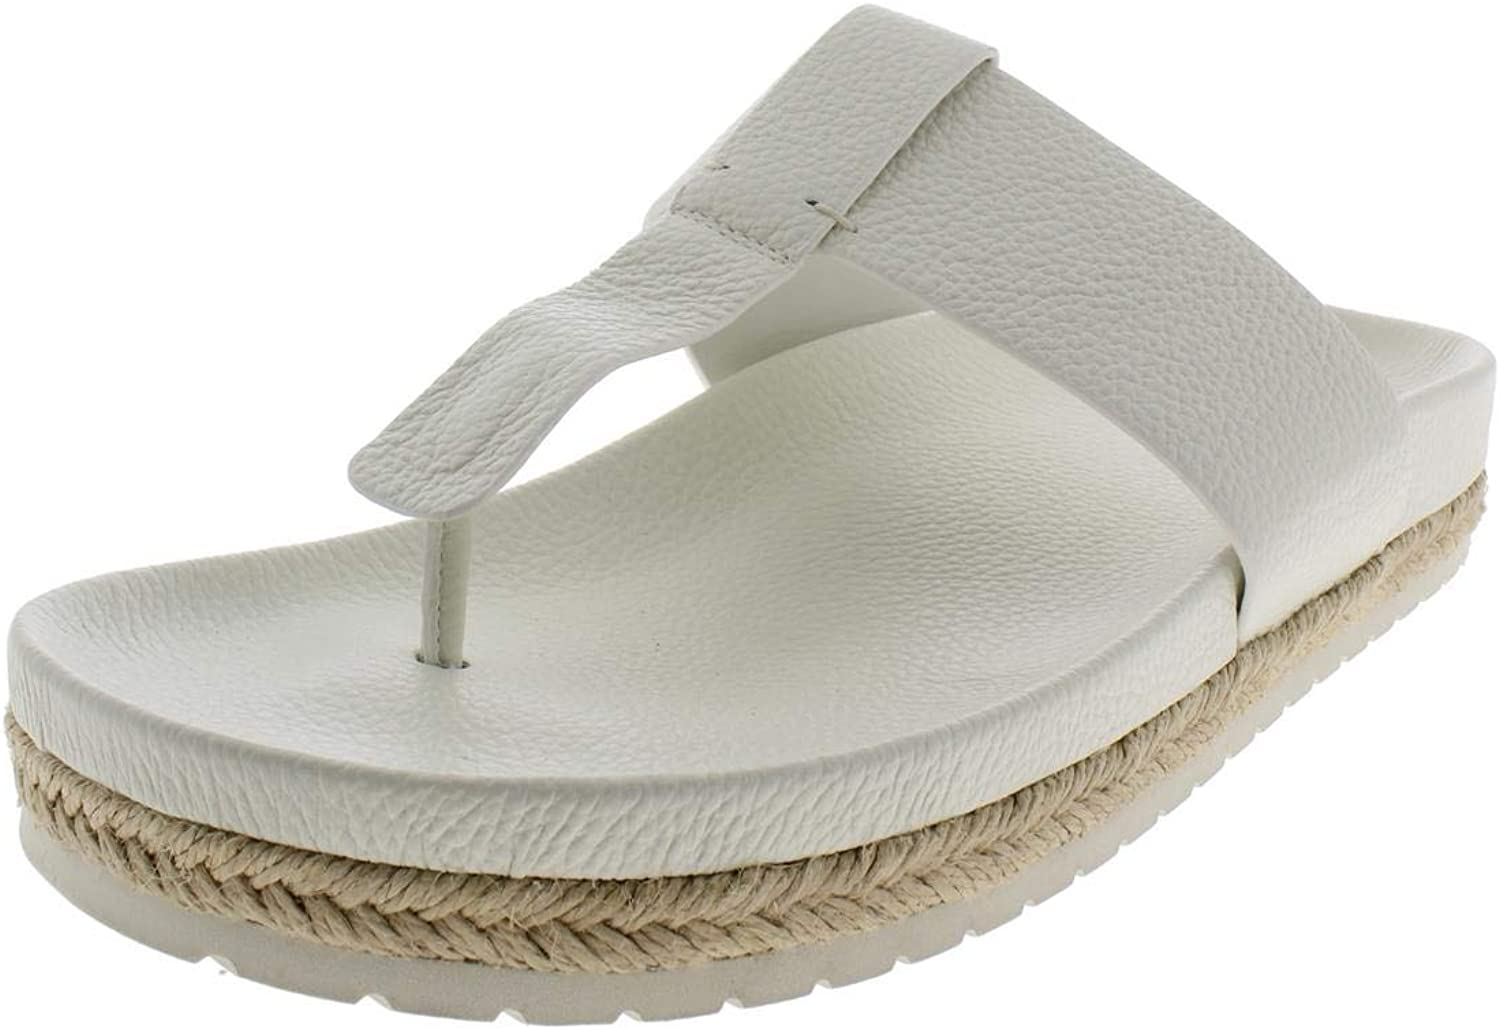 Vince Womens Avani Leather Espadrille Thong Sandals